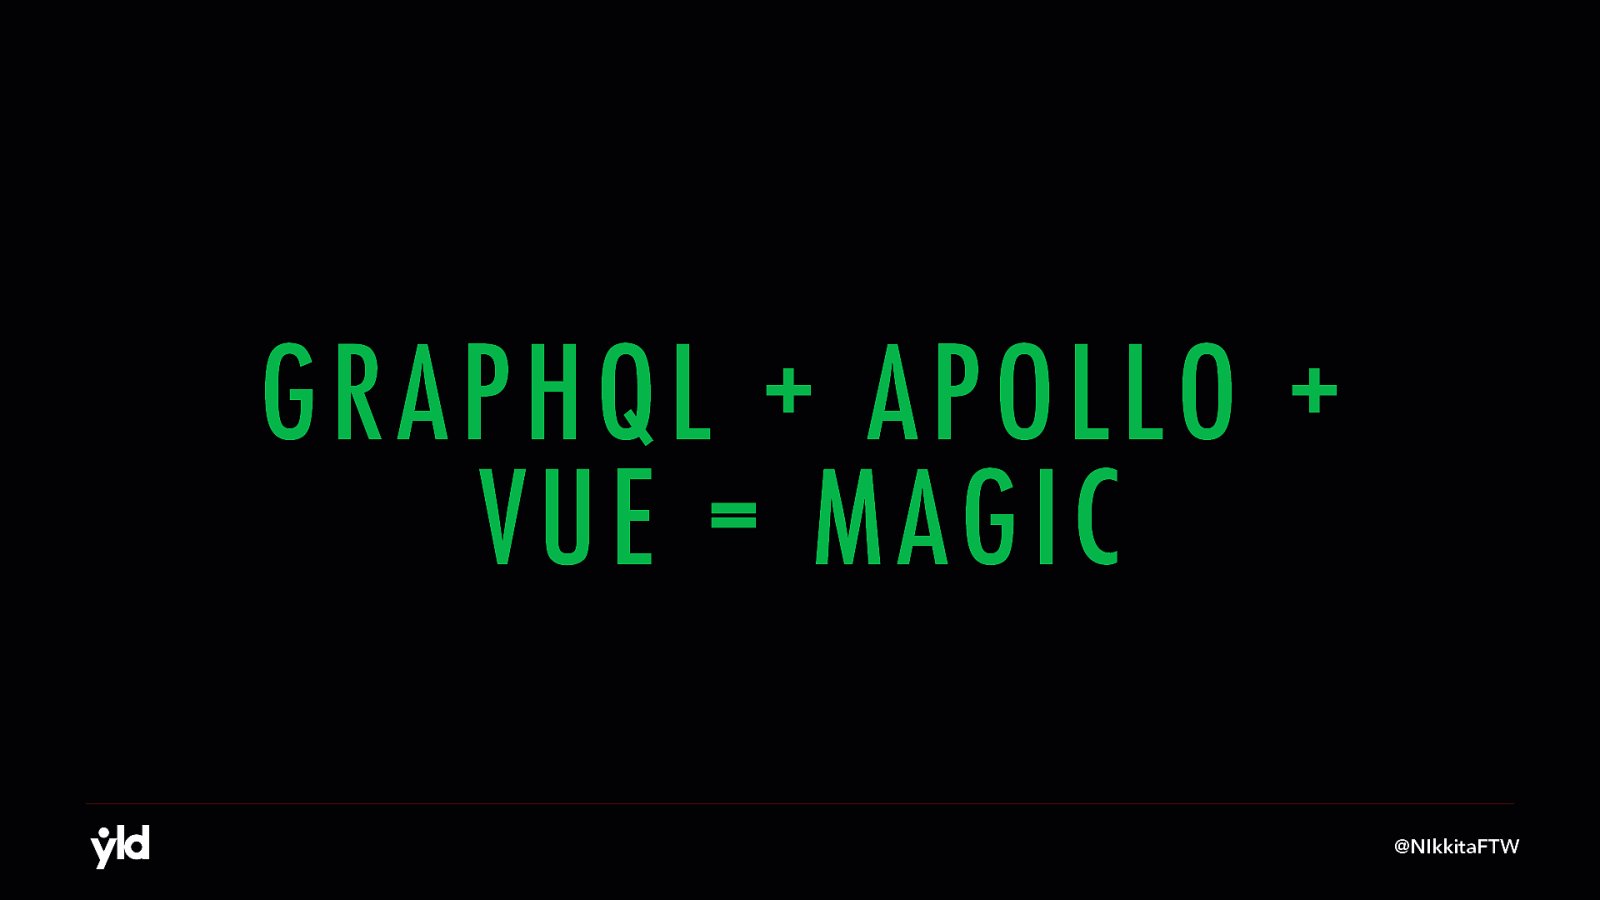 GraphQL + Apollo + Vue = Magic